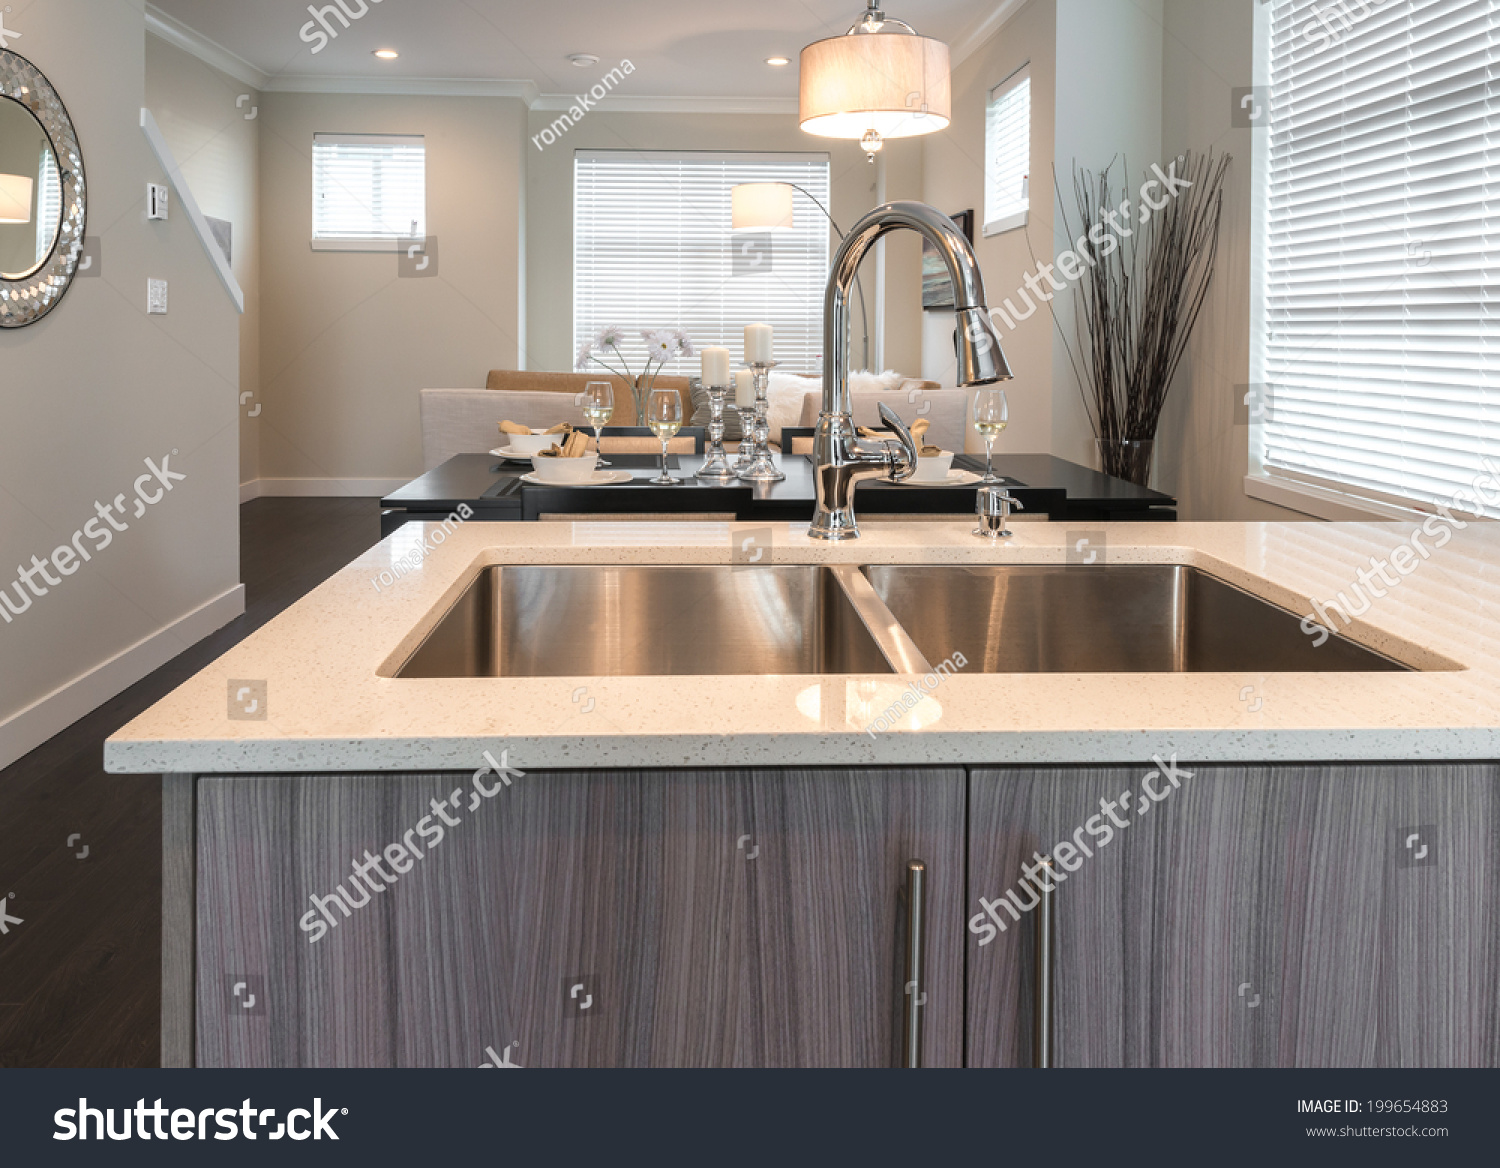 Outlook t he Modern Kitchen Sink nd he Living oom t he Back ... - ^